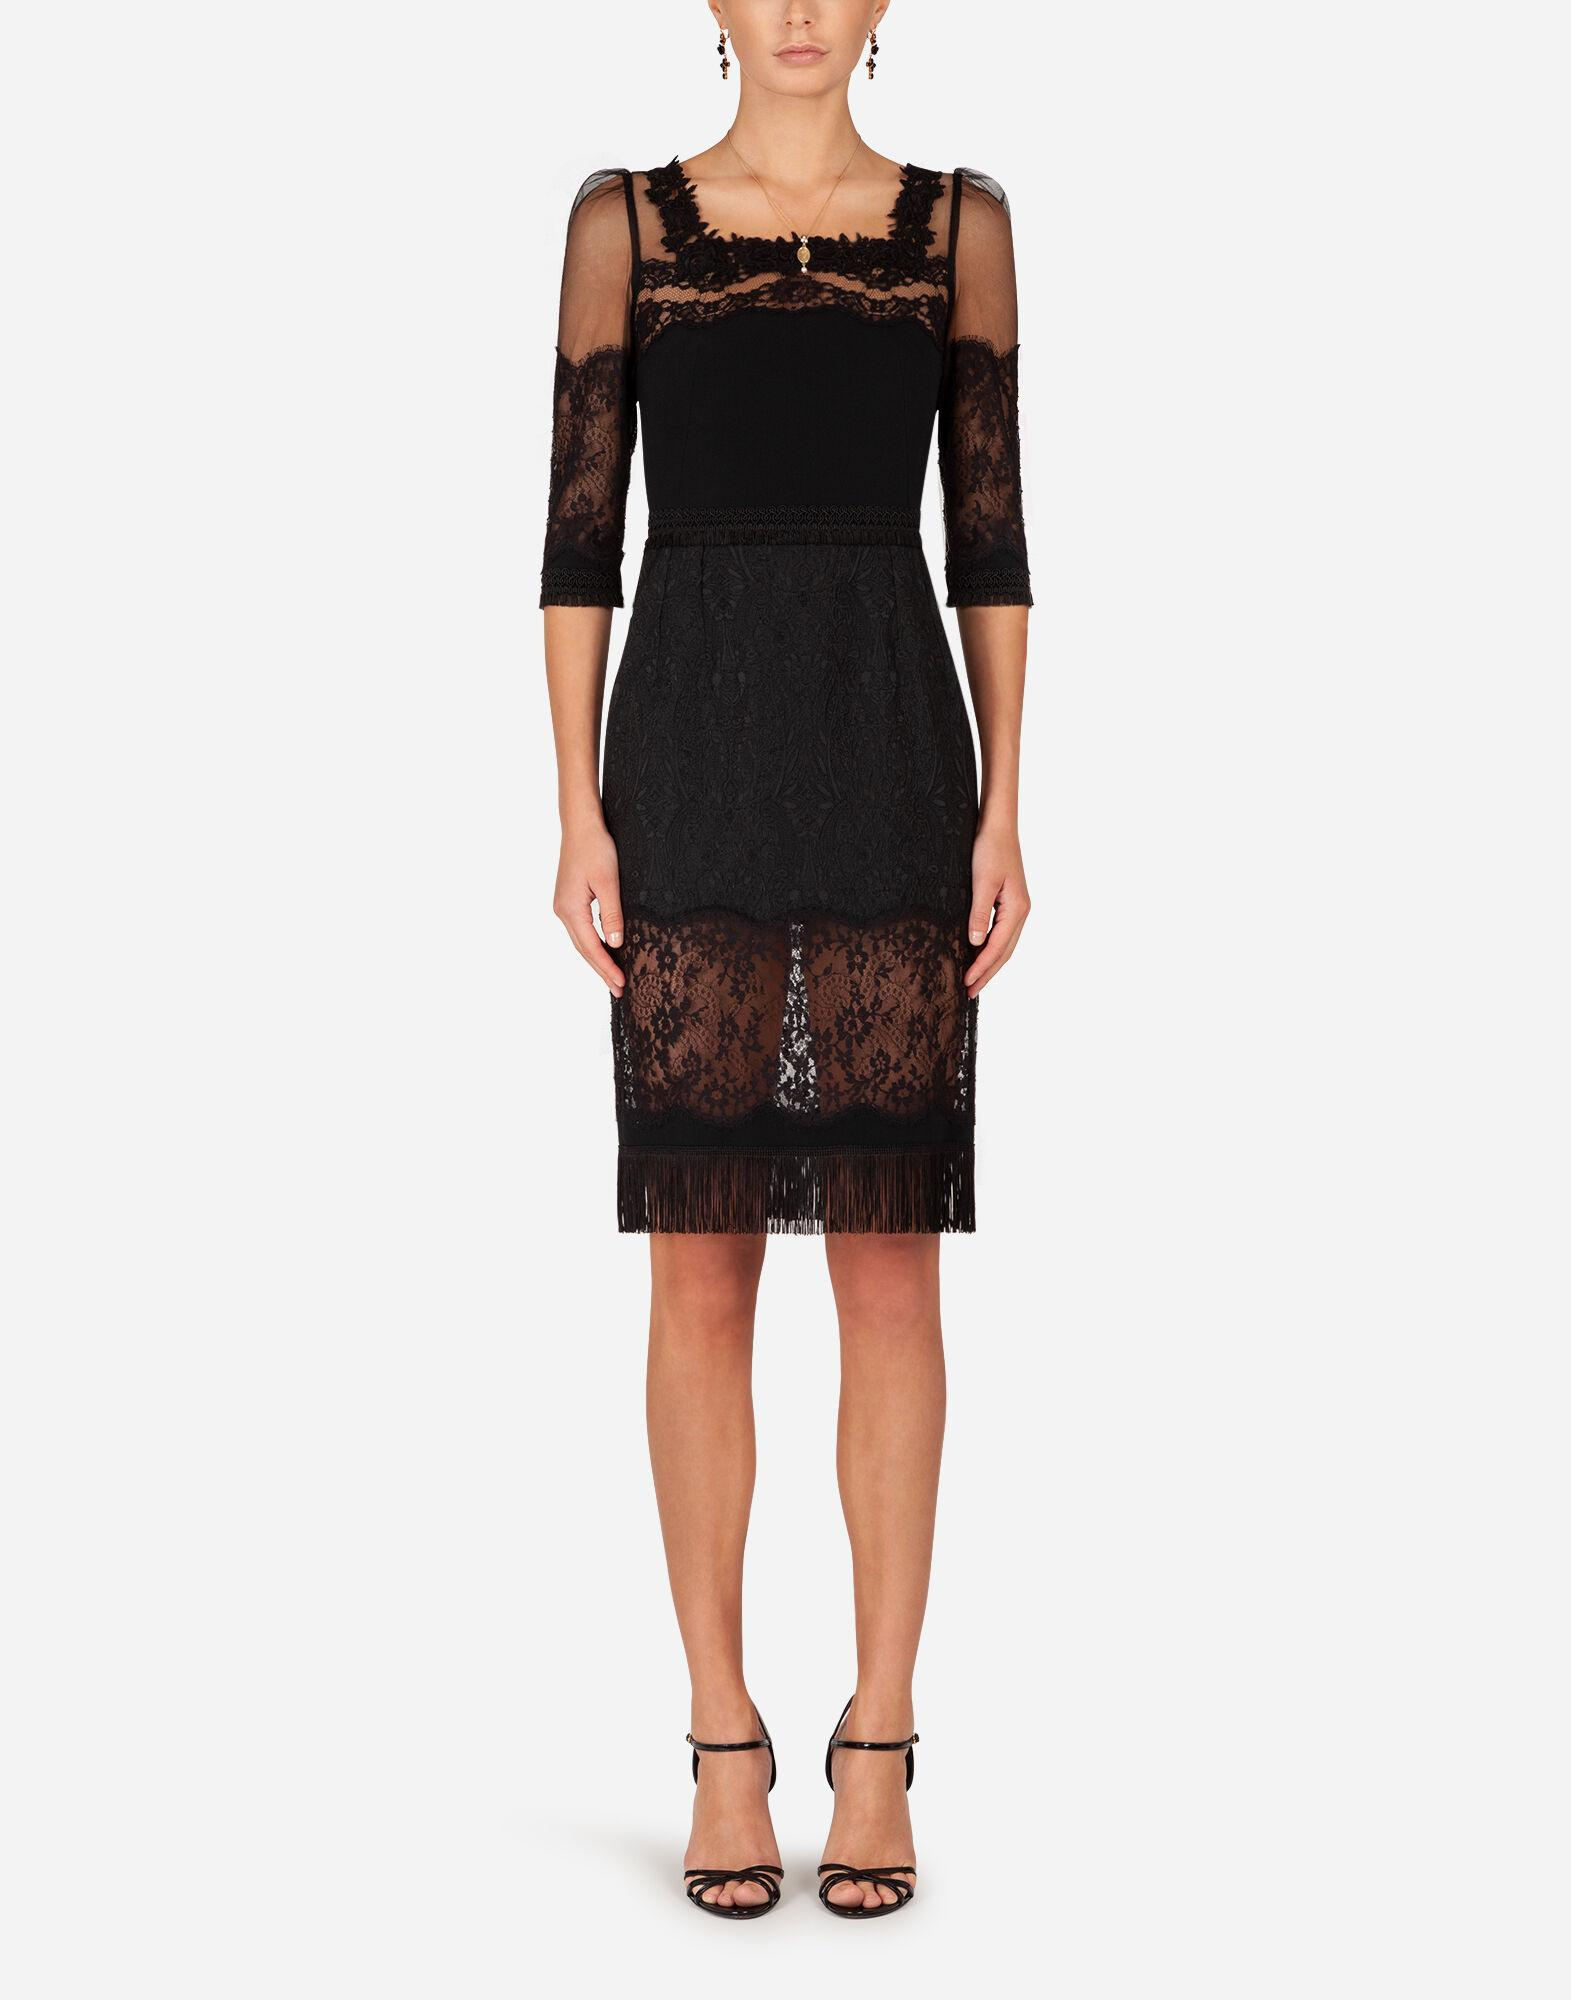 Cady and brocade midi dress with lace inserts